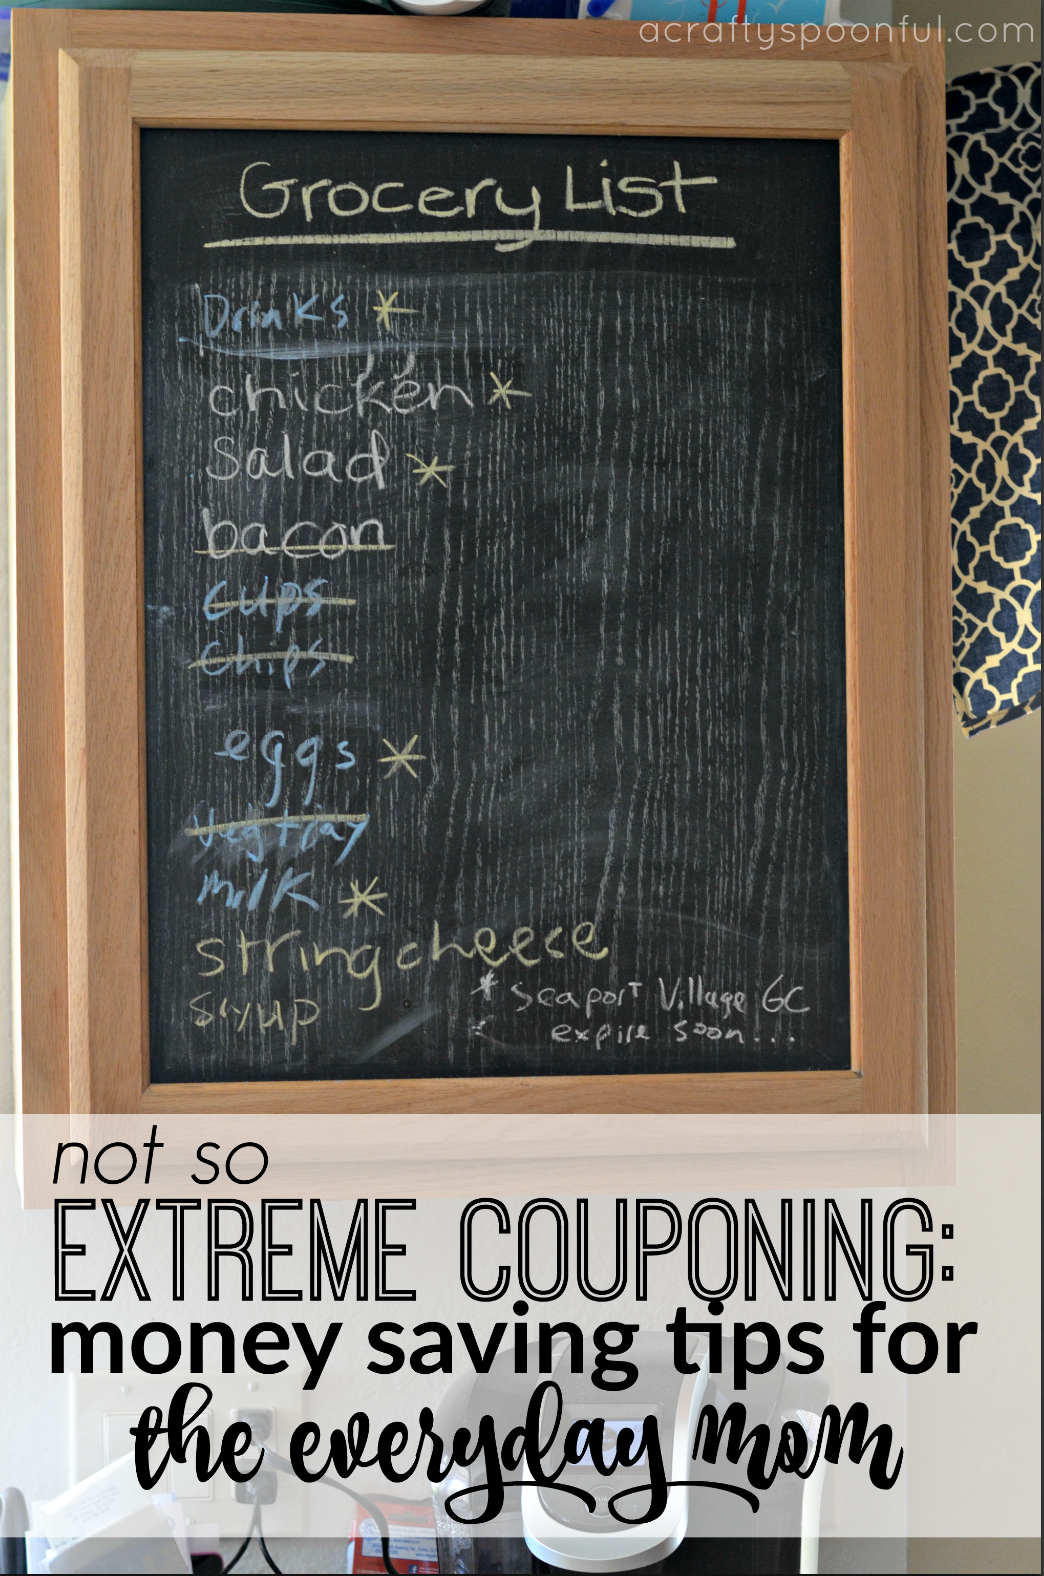 Not So Extreme Couponing: Money Saving Tips for the Everyday Mom